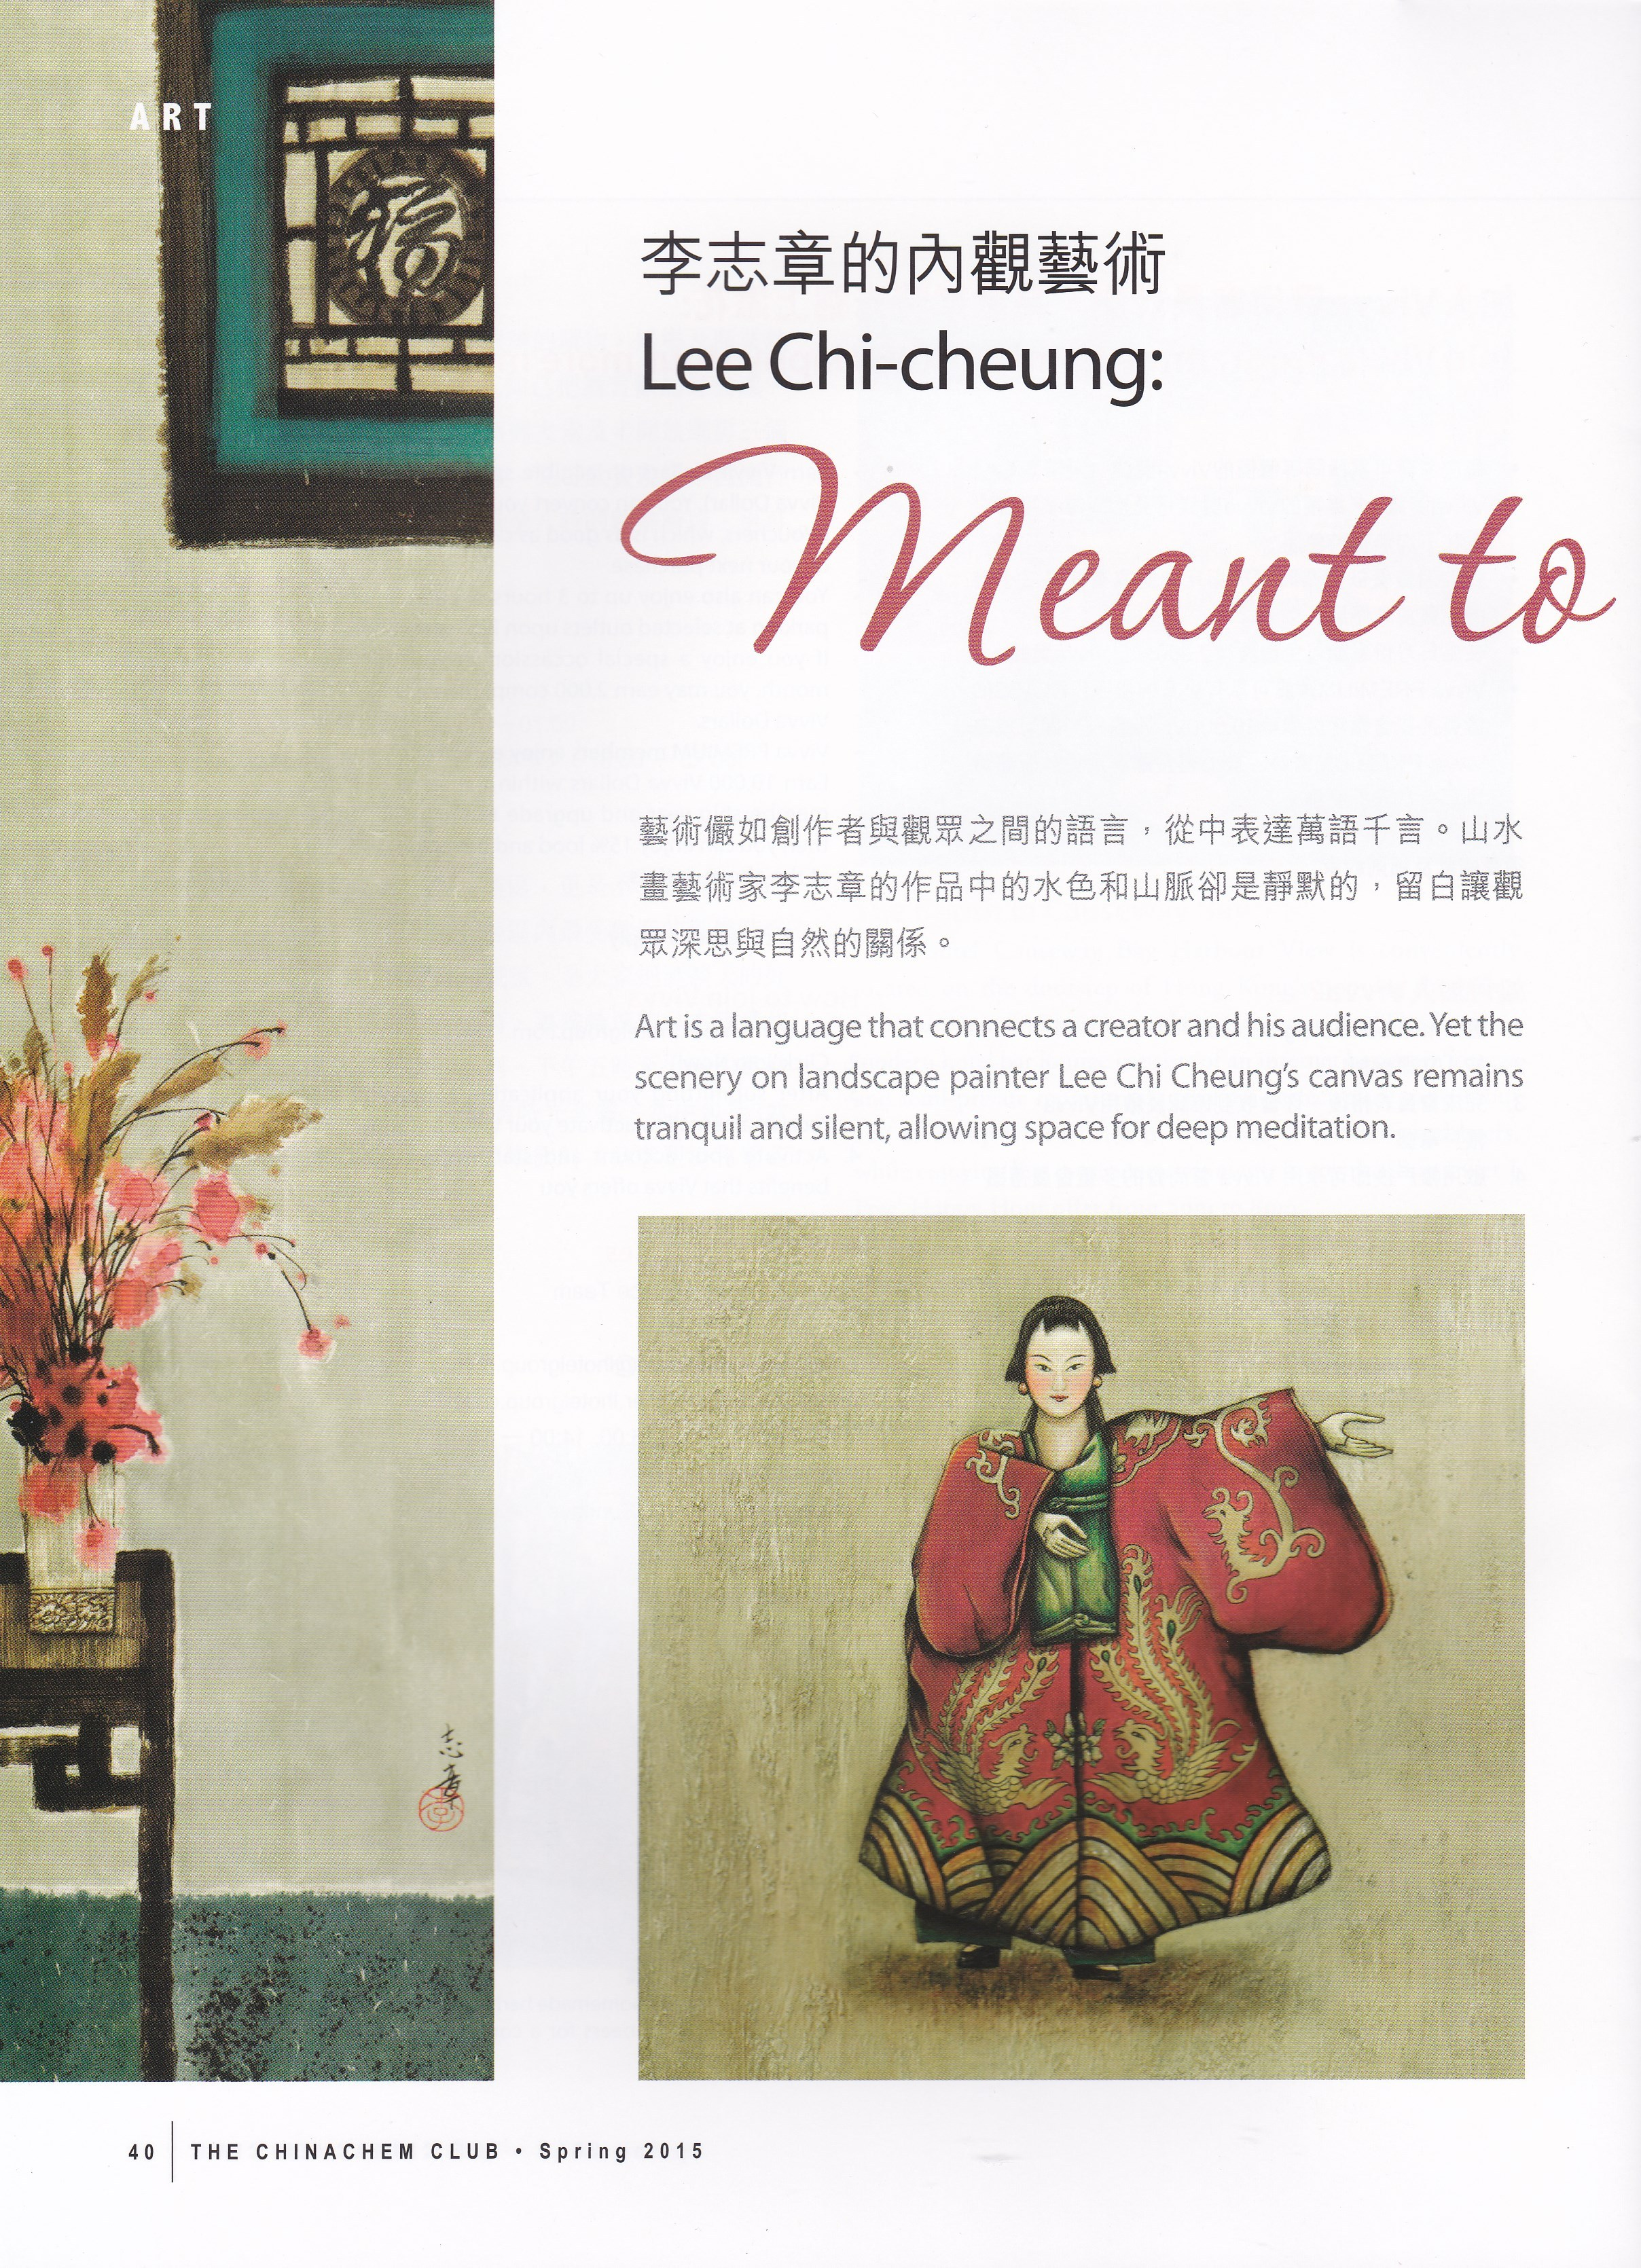 Chinachem Club Issue 44. Spring 2015, P.40; Lee Chi-cheung